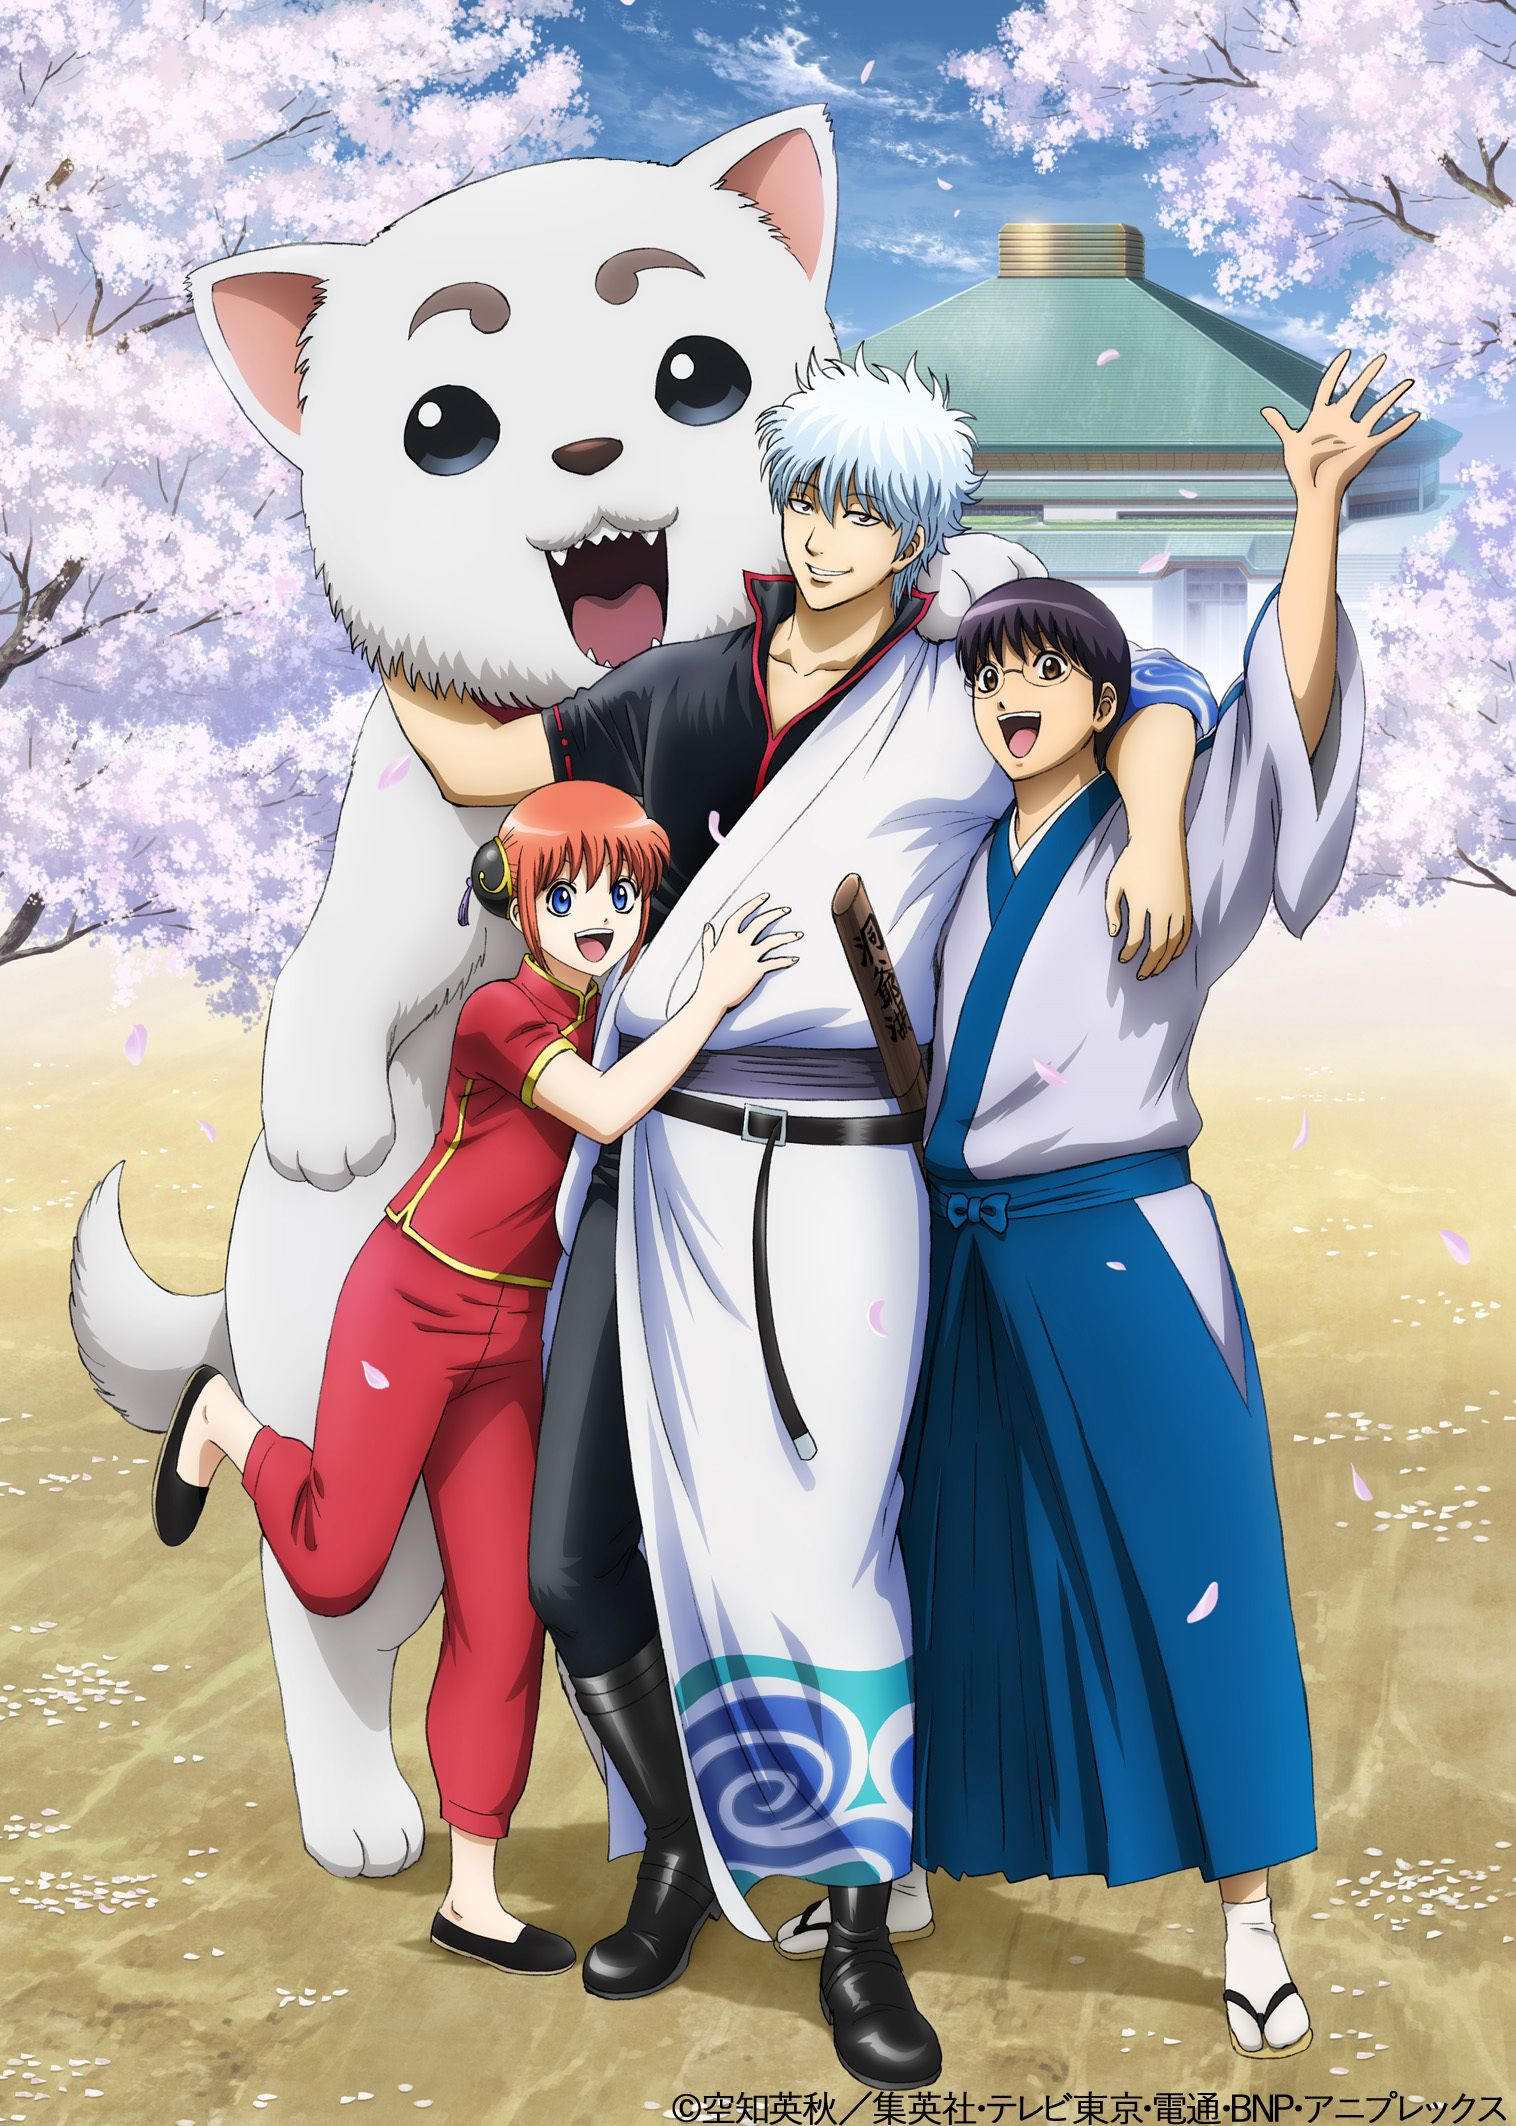 Gintama Gets New Anime Project 'Probably' Recent anime